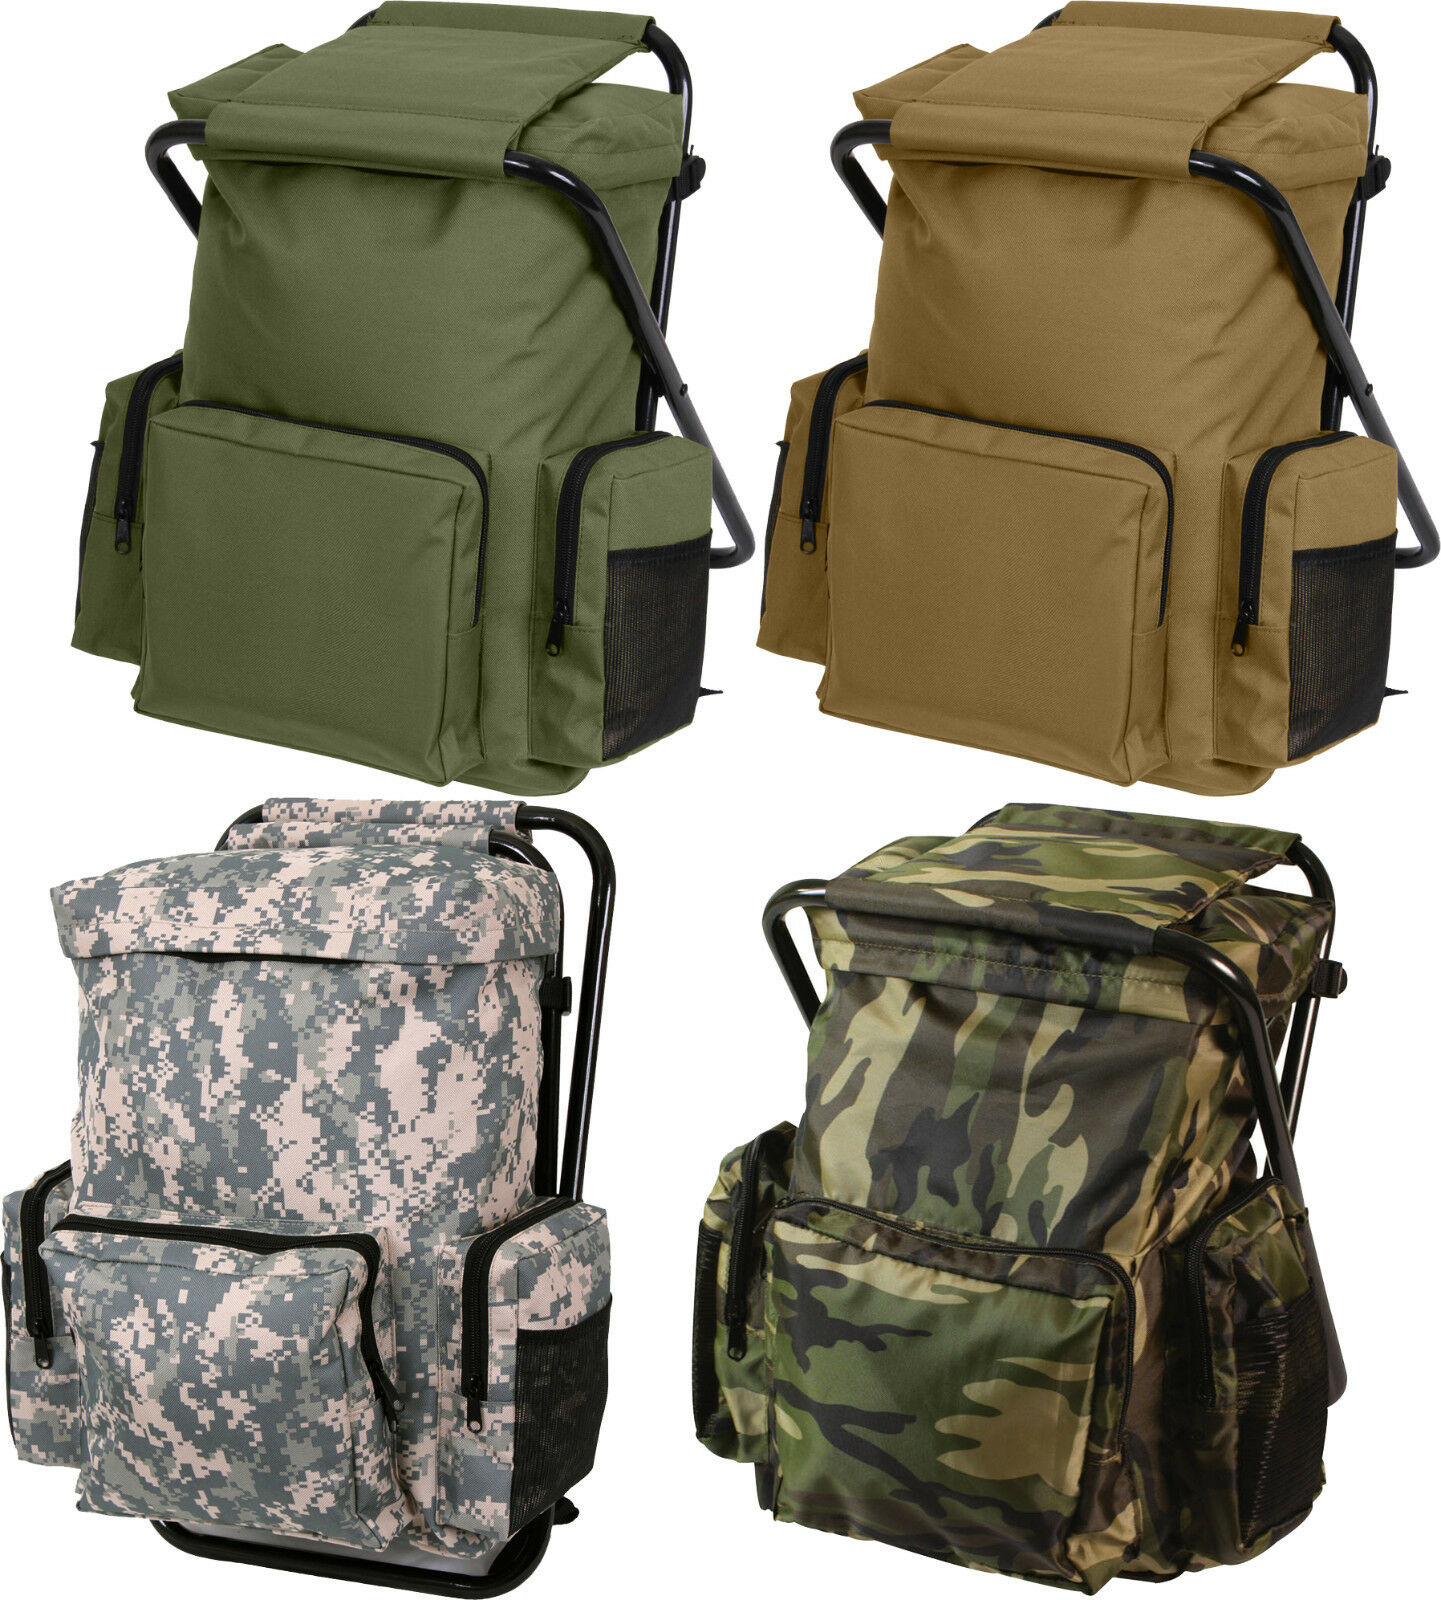 Backpack Amp Stool Combo Camping Outdoor Pack Ebay